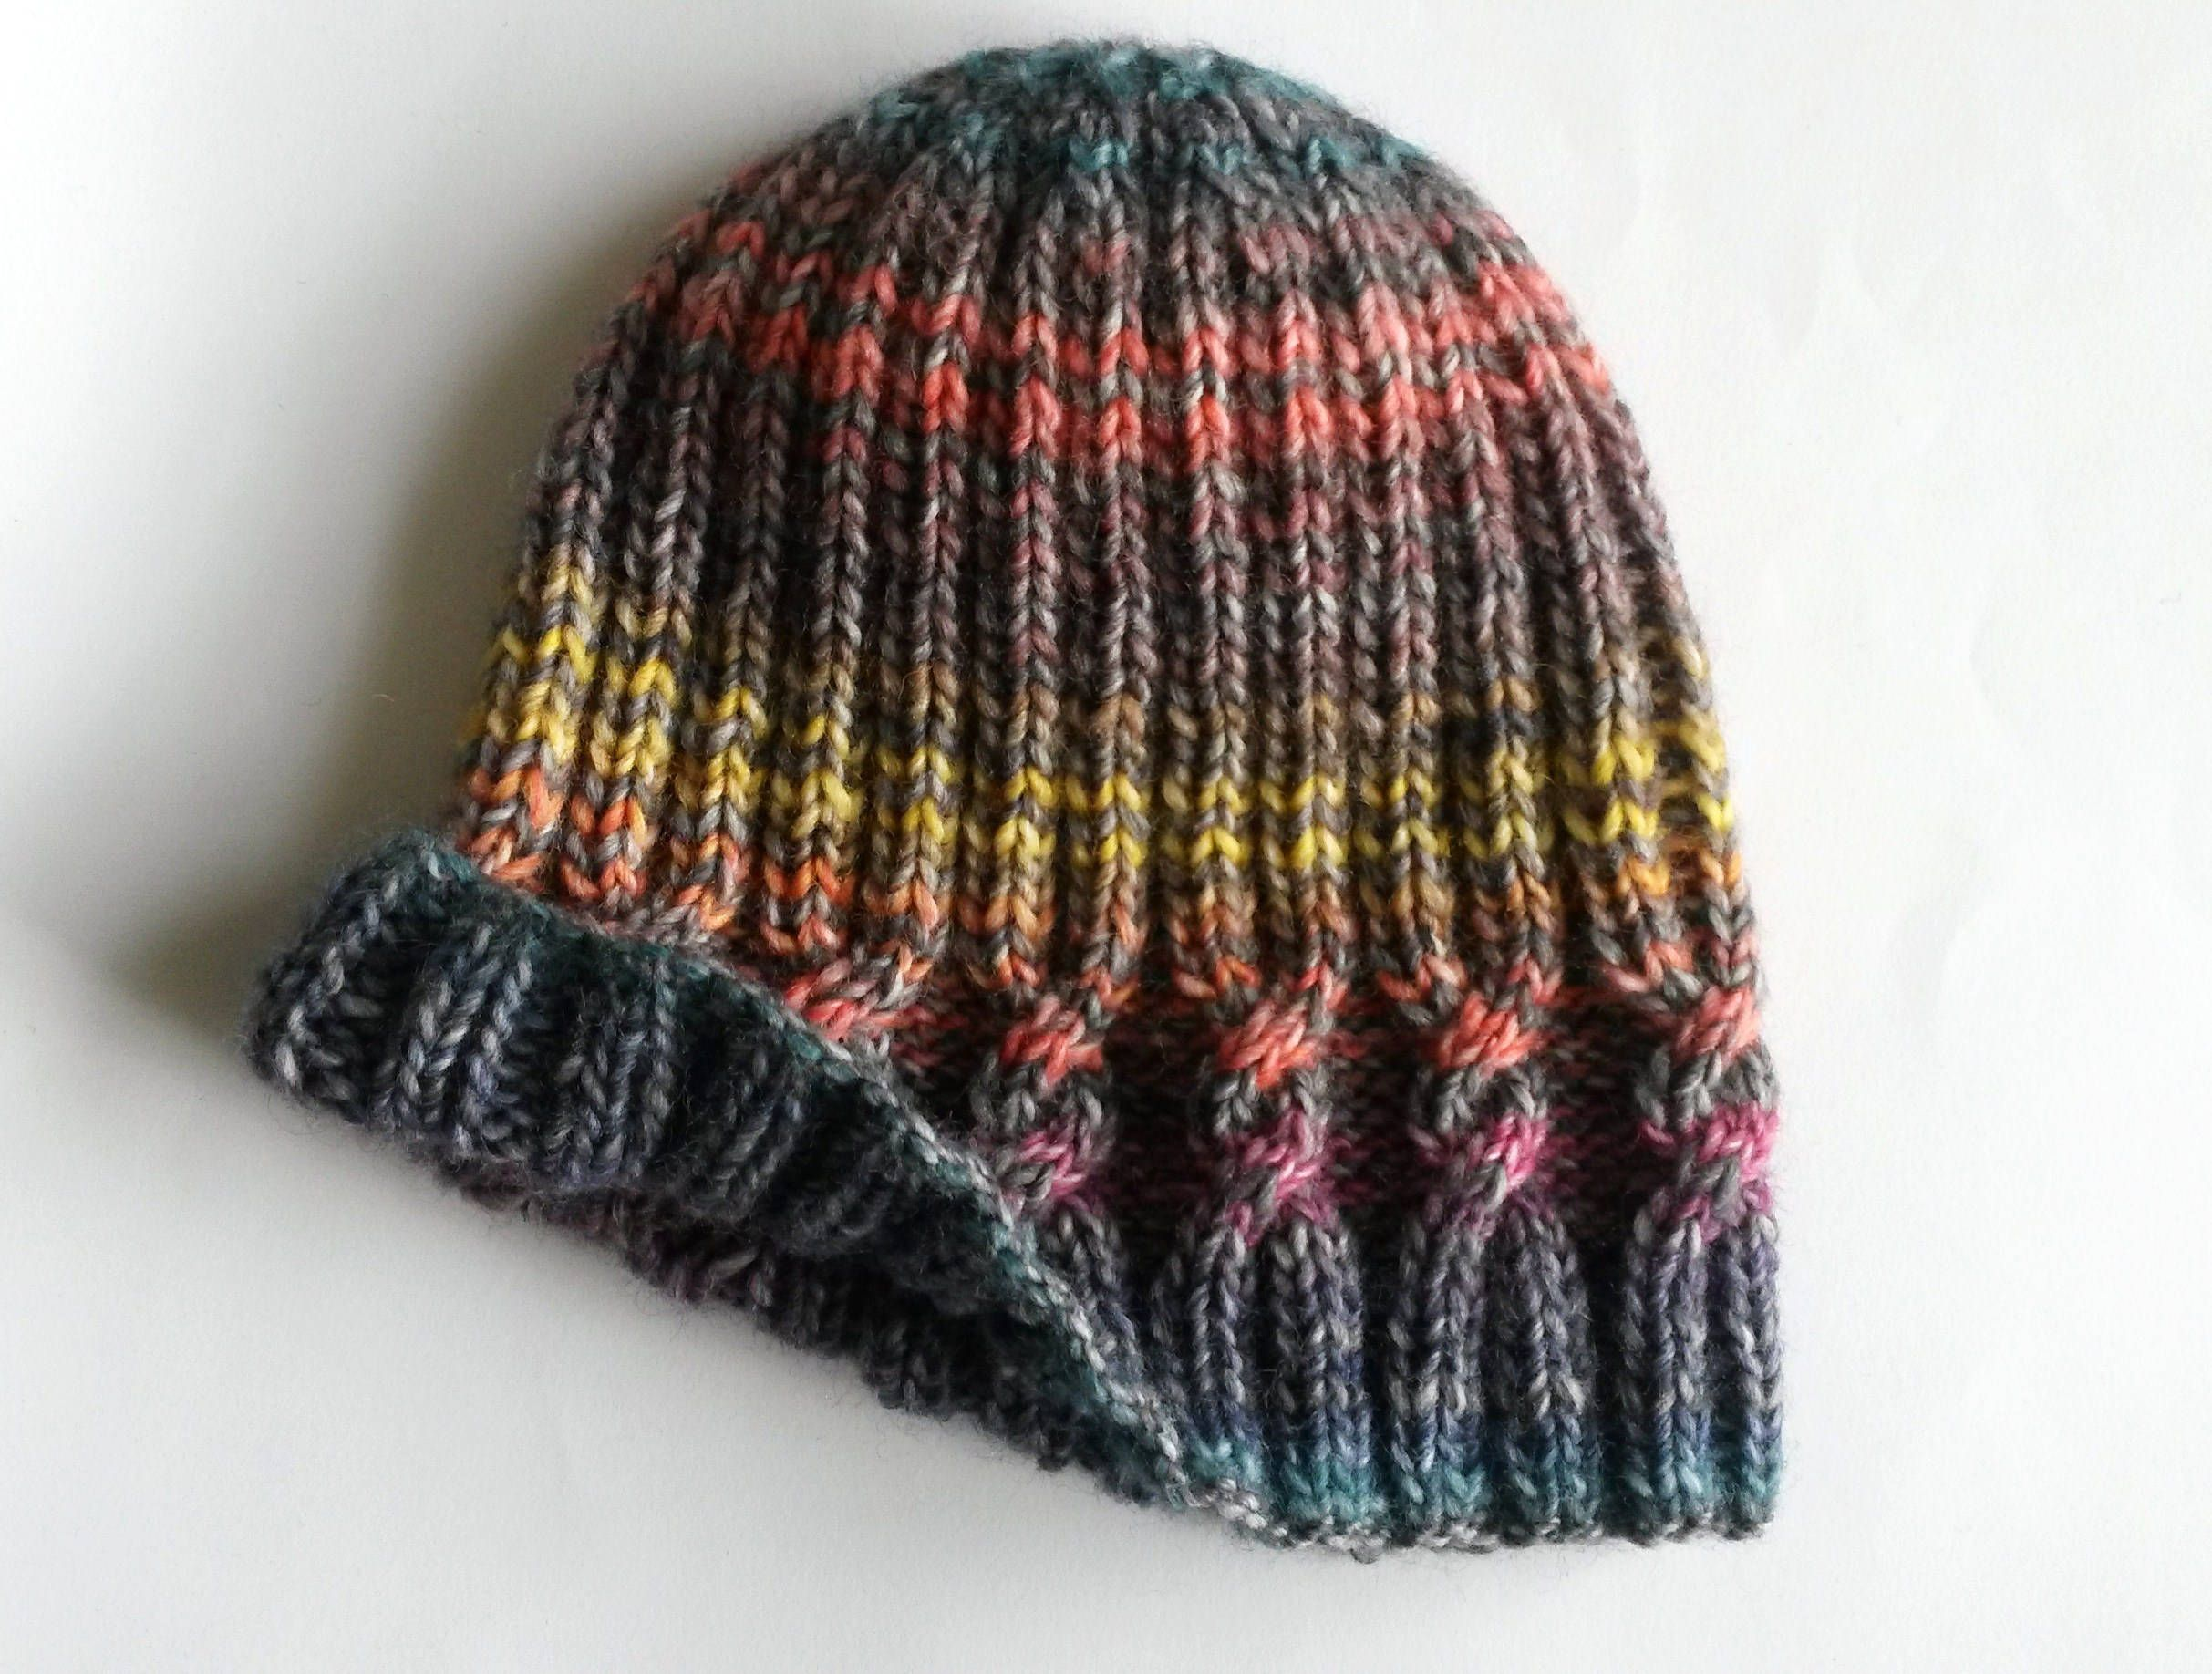 Knitting pattern: instant download pdf. This simple cable beanie is ...